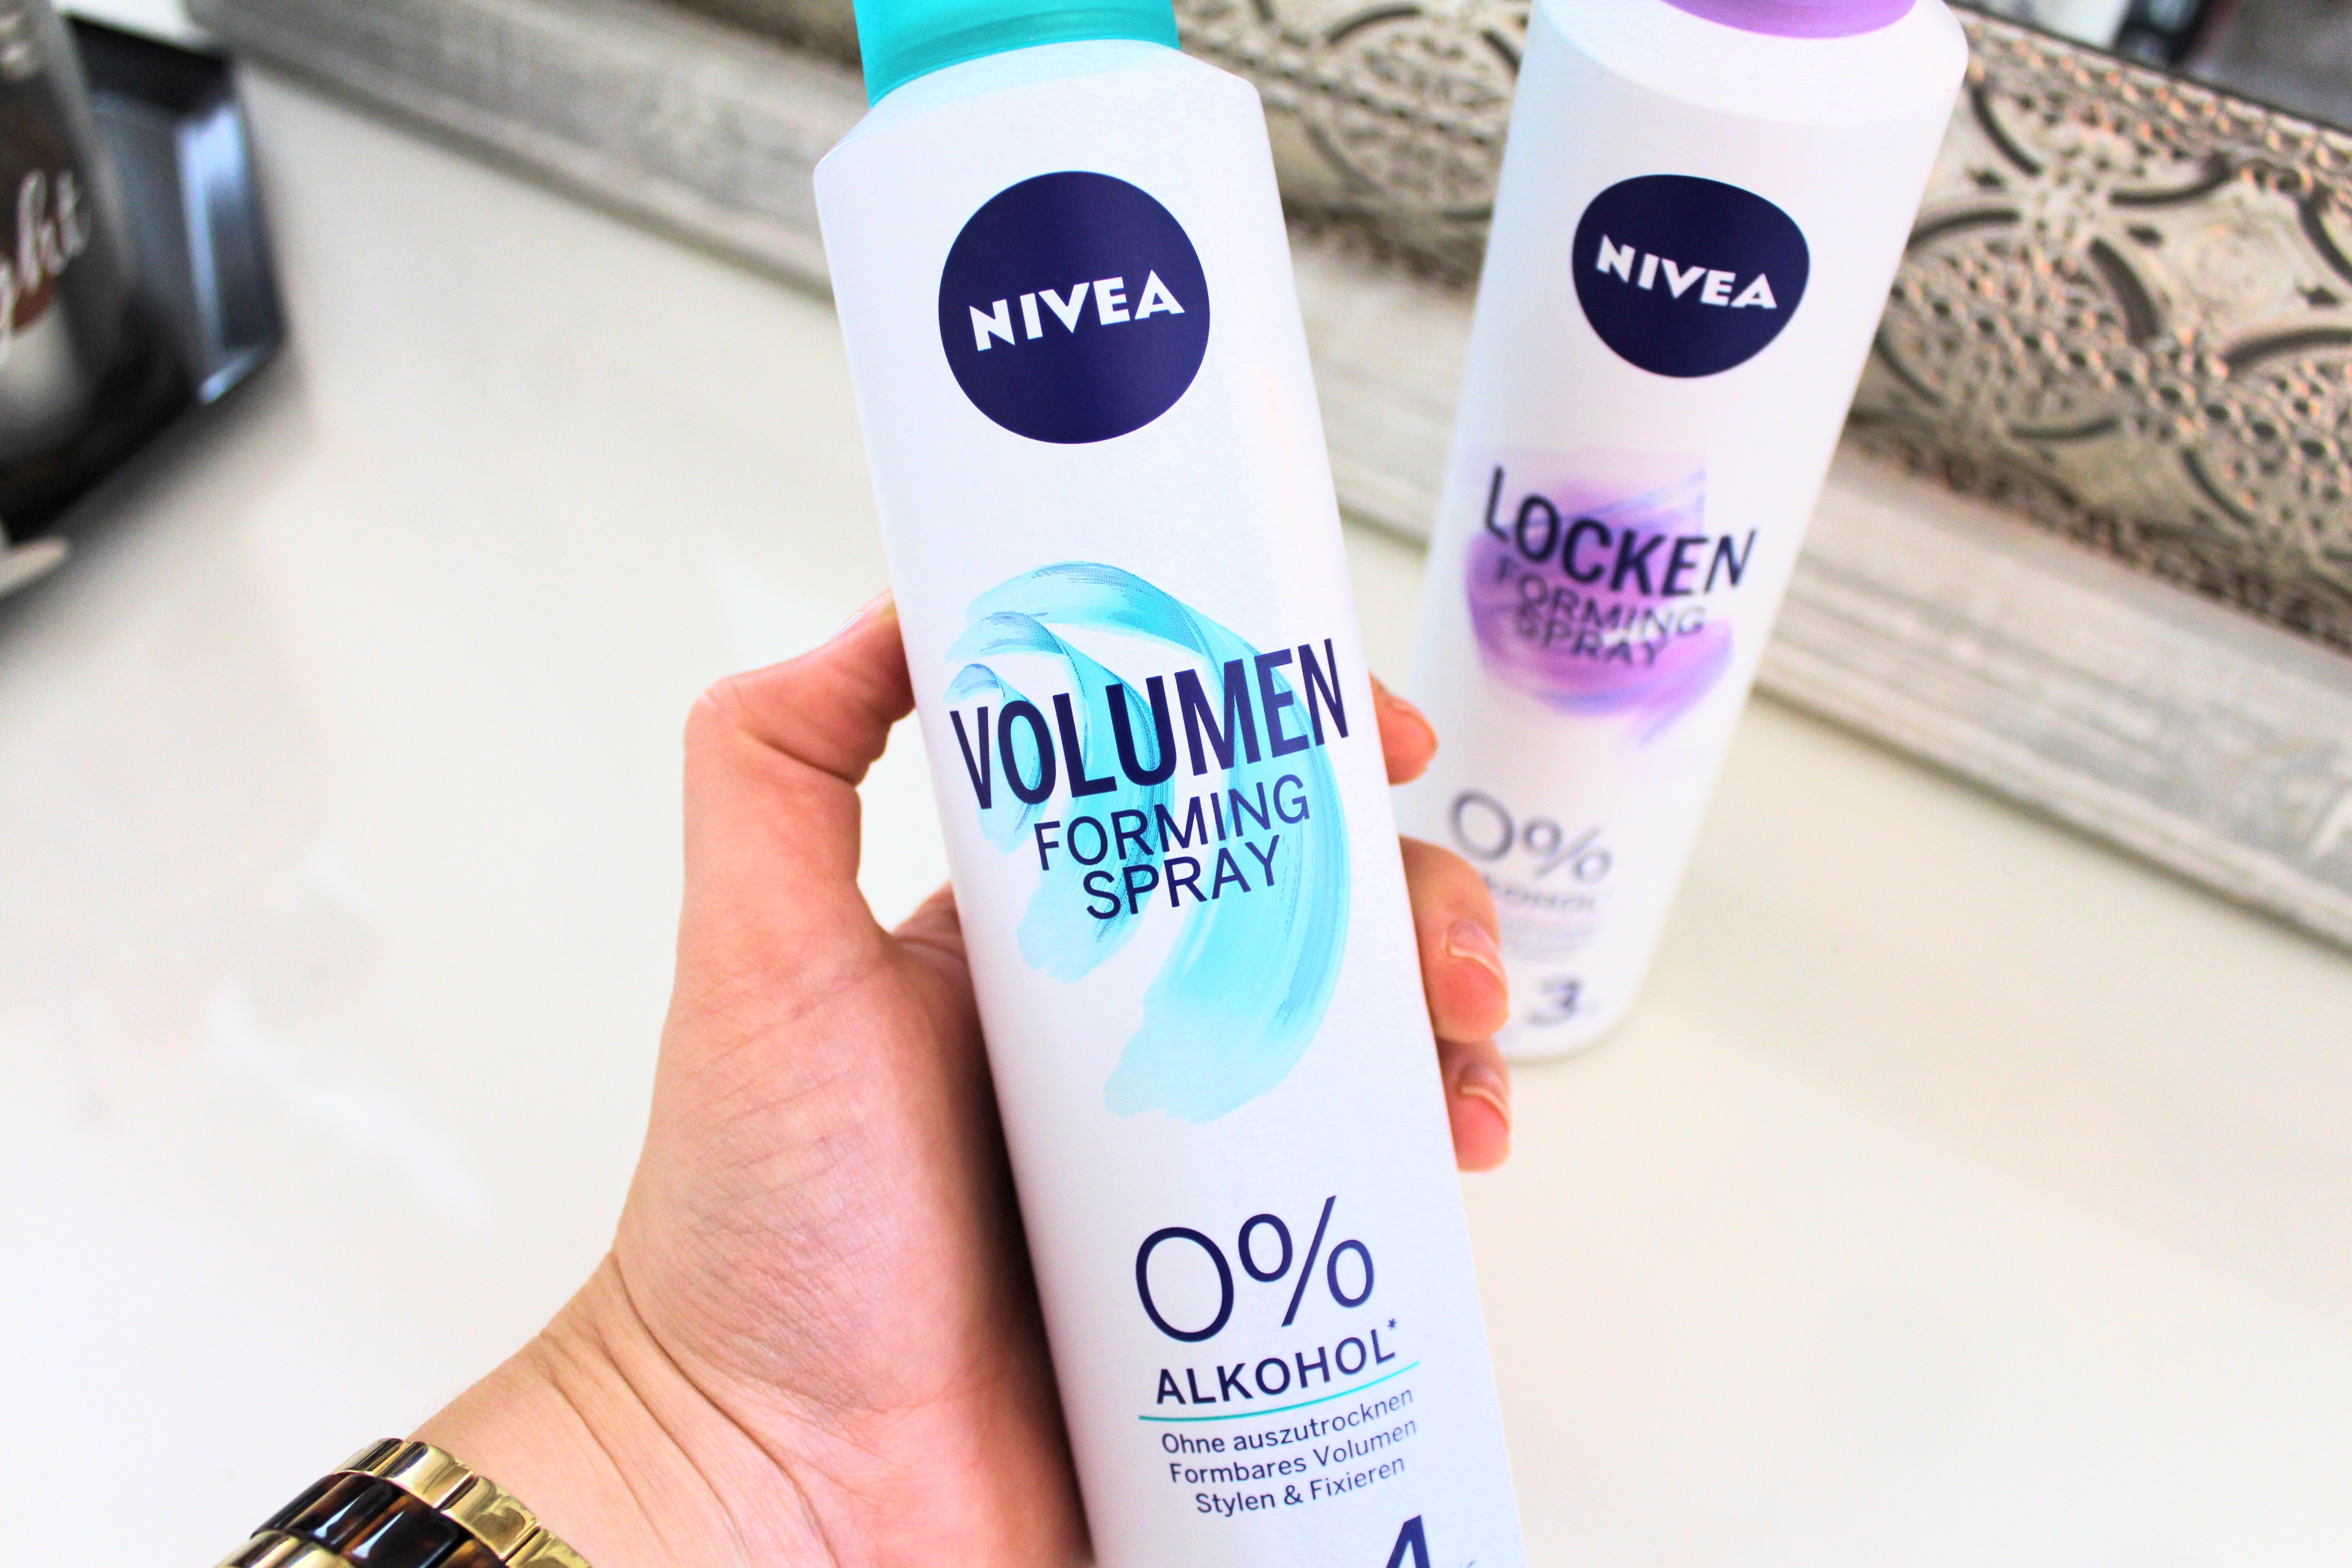 Volumen Forming Spray von Nivea